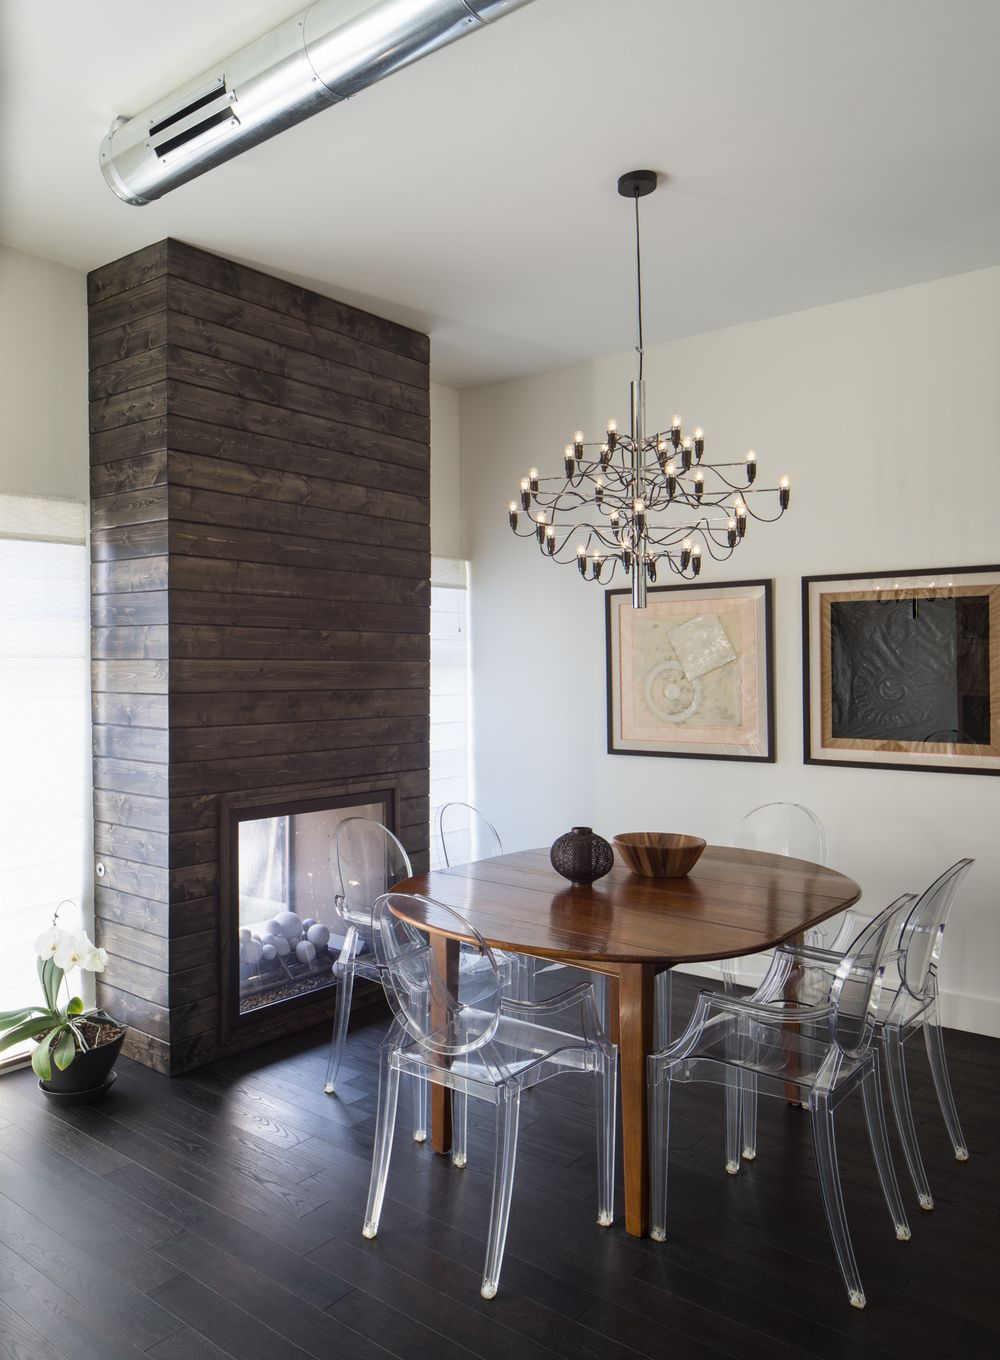 While Wood Is The Major Design Element In This Contemporary Dining Room Ghost Chairs